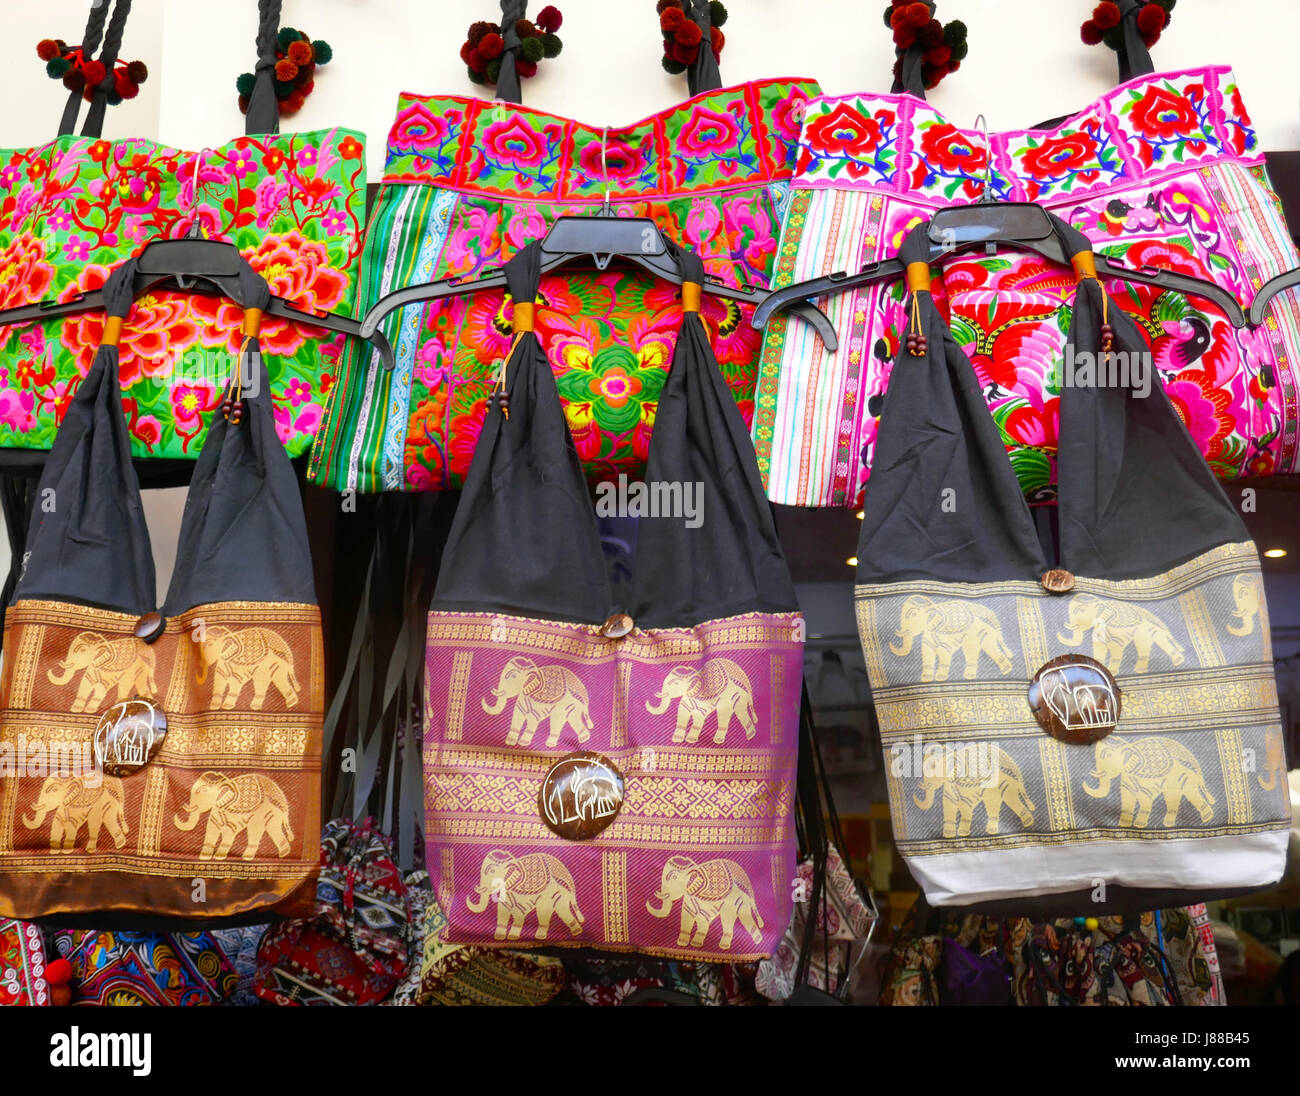 Cheerful bags on sale at Siem Reap, Cambodia - Stock Image